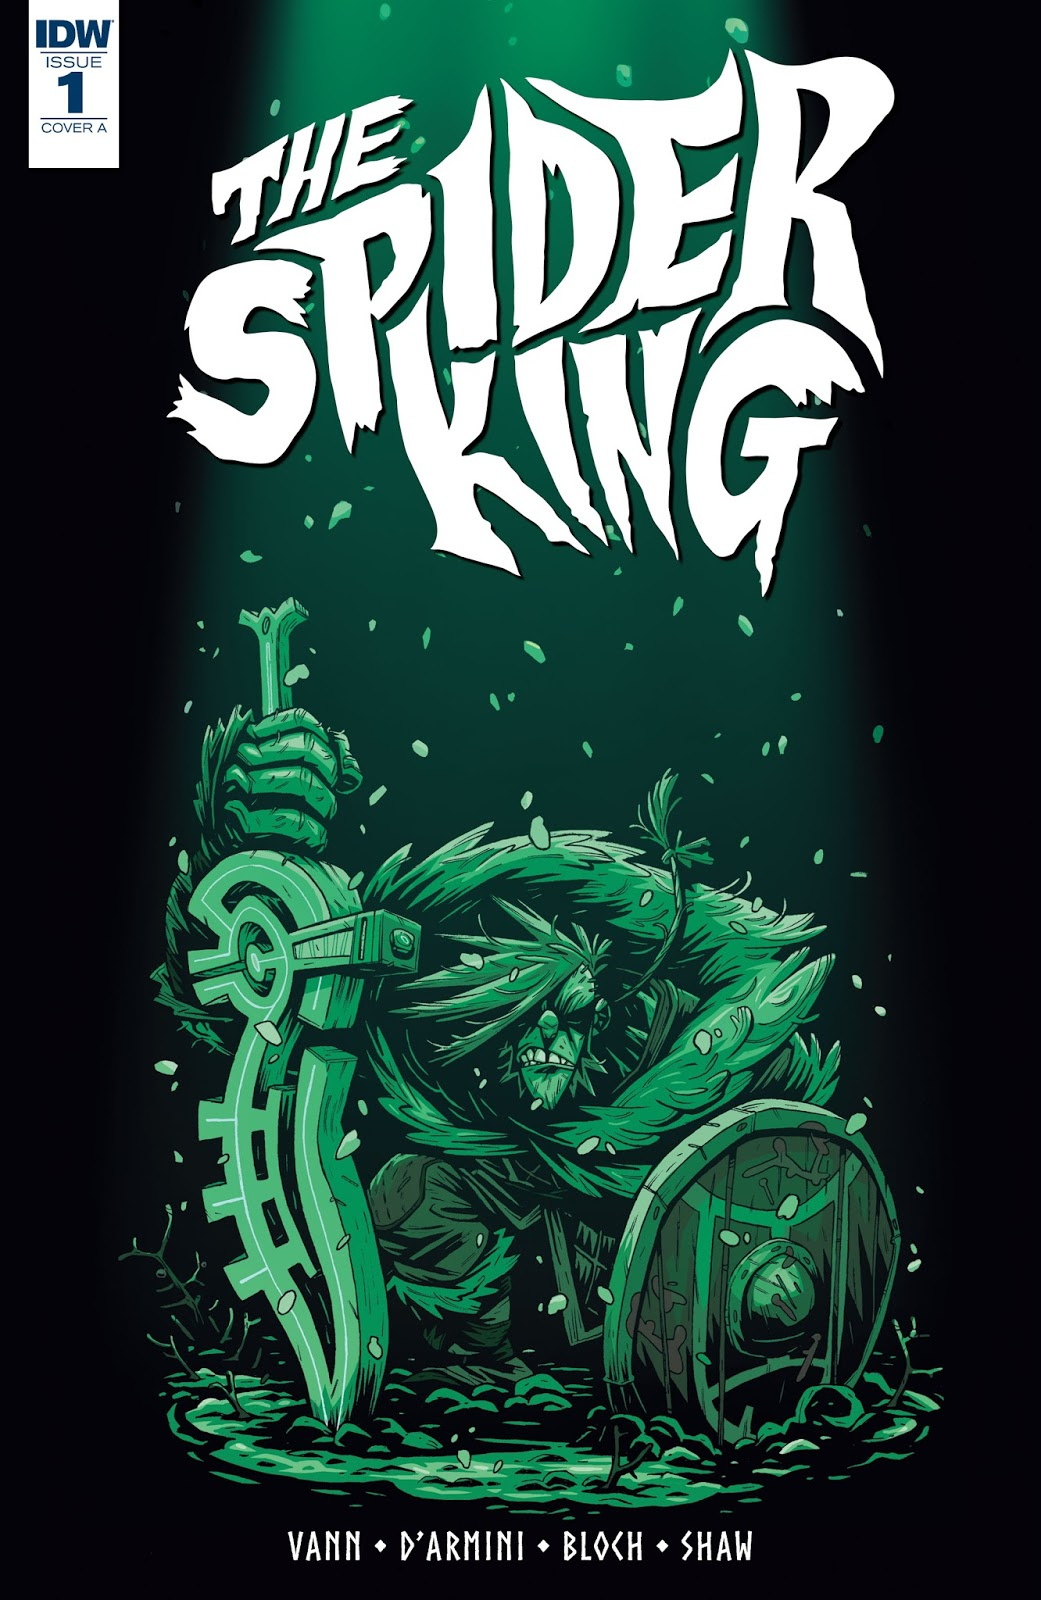 The Spider King cover by Simone D'Armini